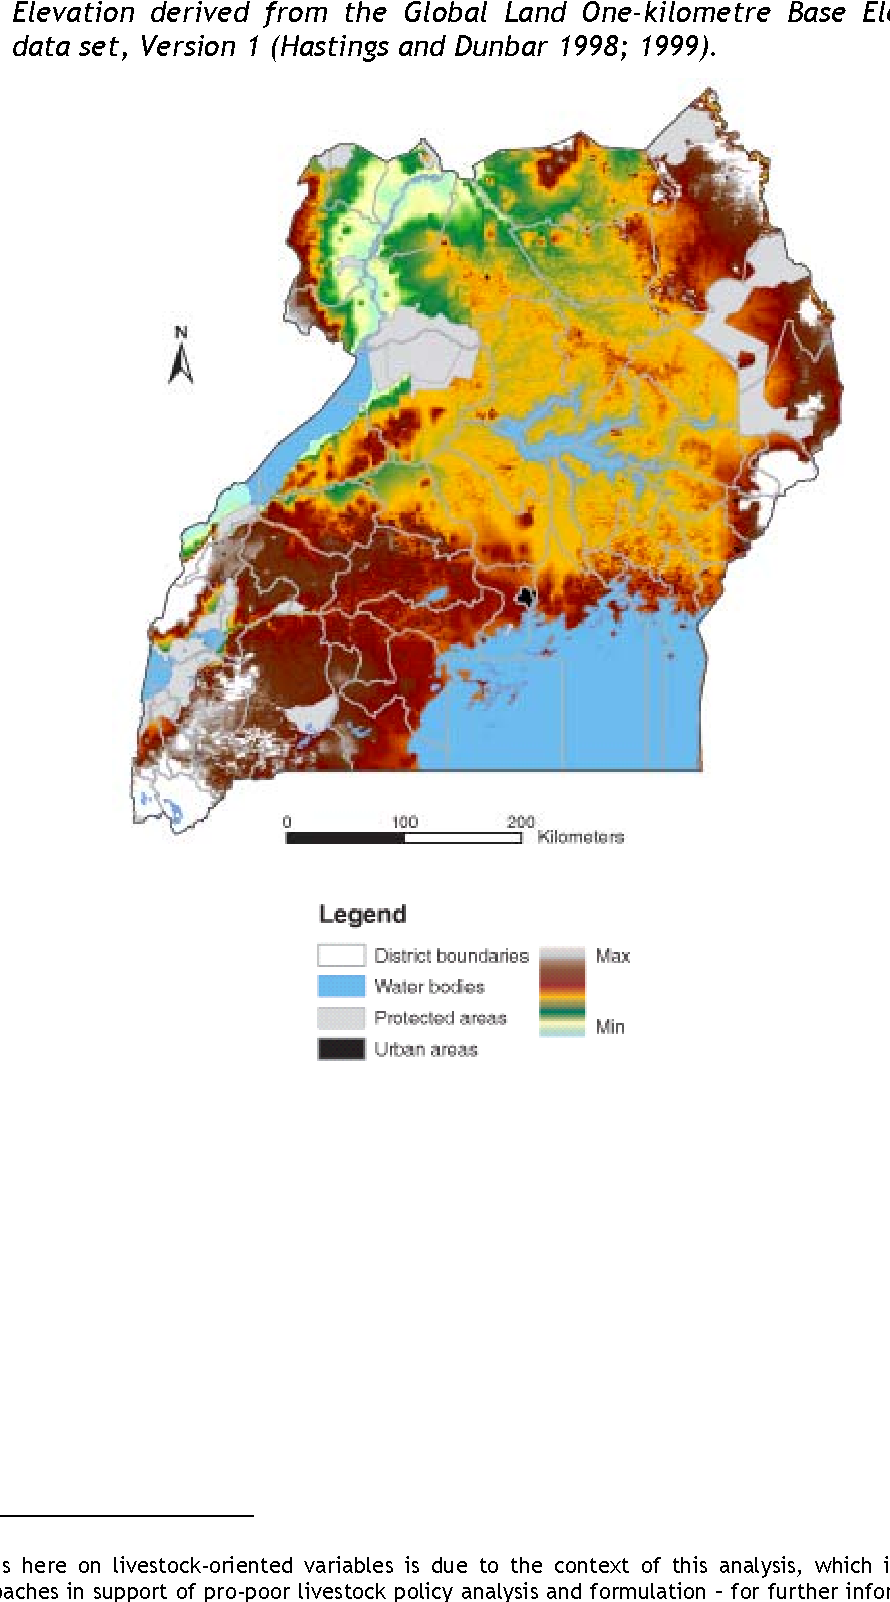 Figure 5 from Poverty Mapping in Uganda: An ysis Using ... on global australia map, global literacy map, foreign policy map, global christianity map, suburban sprawl map, climate change map, global market map, global fraud map, global finance map, global co2 emissions map, global power map, global cancer map, global depression map, global productivity map, global aging map, developing countries map, global hiv map, global racial map, global famine map, global peace map,